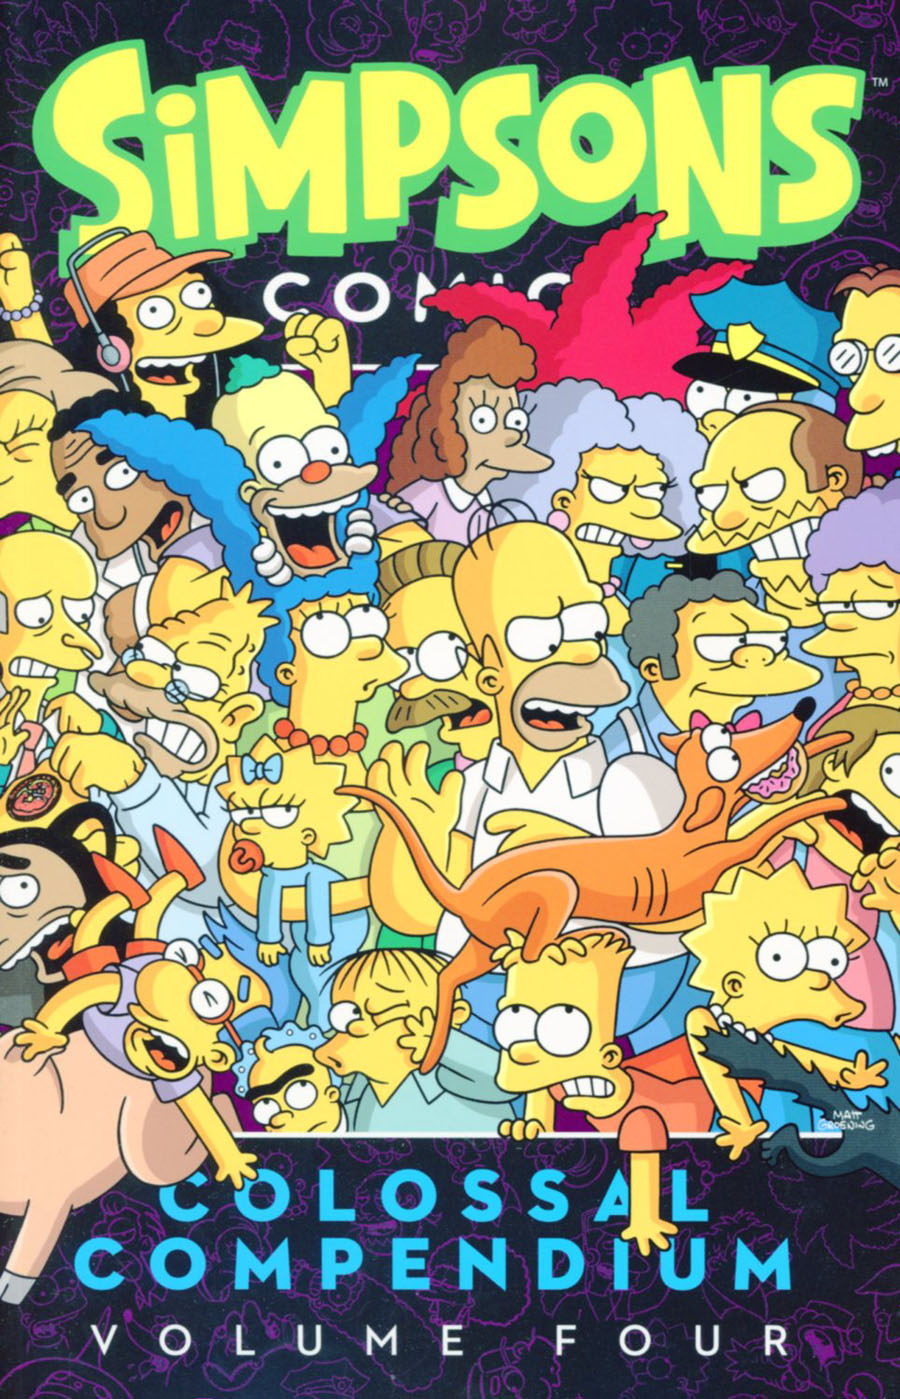 Simpsons Comics Colossal Compendium Vol 4 TP